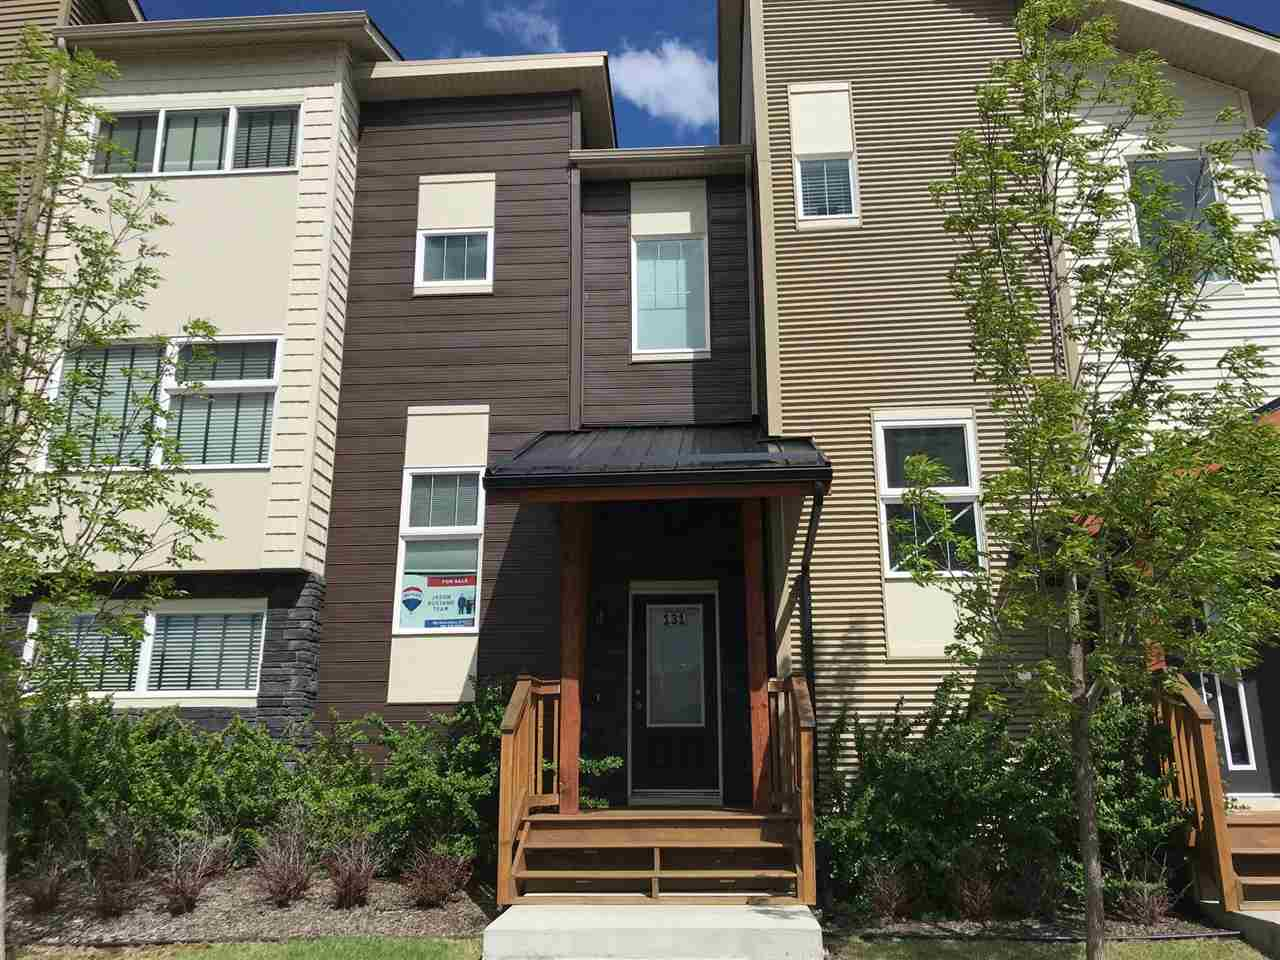 Take IMMEDIATE POSSESSION of this incredible 2 bedroom, 2 bathroom 810sqft  bi-level condo located in the Rushes of Southfork. Walking distance to parks, playgrounds, Father Leduc School (K-8) and public transit. Easy access to Hwy 2 & only 10min to airport, Costco and mall! West facing unit is a few short steps away from walking trails. Fresh appeal with bright white doors and trim throughout. Open main floor offers easy to maintain tile floors. Galley style kitchen has a huge window allowing lots of natural light to flow through, stainless steel appliances, trendy tile back splash, and plenty of cabinet and counter space. Enjoy a coffee while taking in the morning sun on your east facing balcony. Upper level offers master suite complete w/ceiling fan, private balcony, good sized 4pce ensuite & walk in closet. Well designed layout offers an ideal roommate set up with a 2nd master suite (also with walk in closet!) and huge 3pce bath located in lower level. Lots of storage space in laundry room.